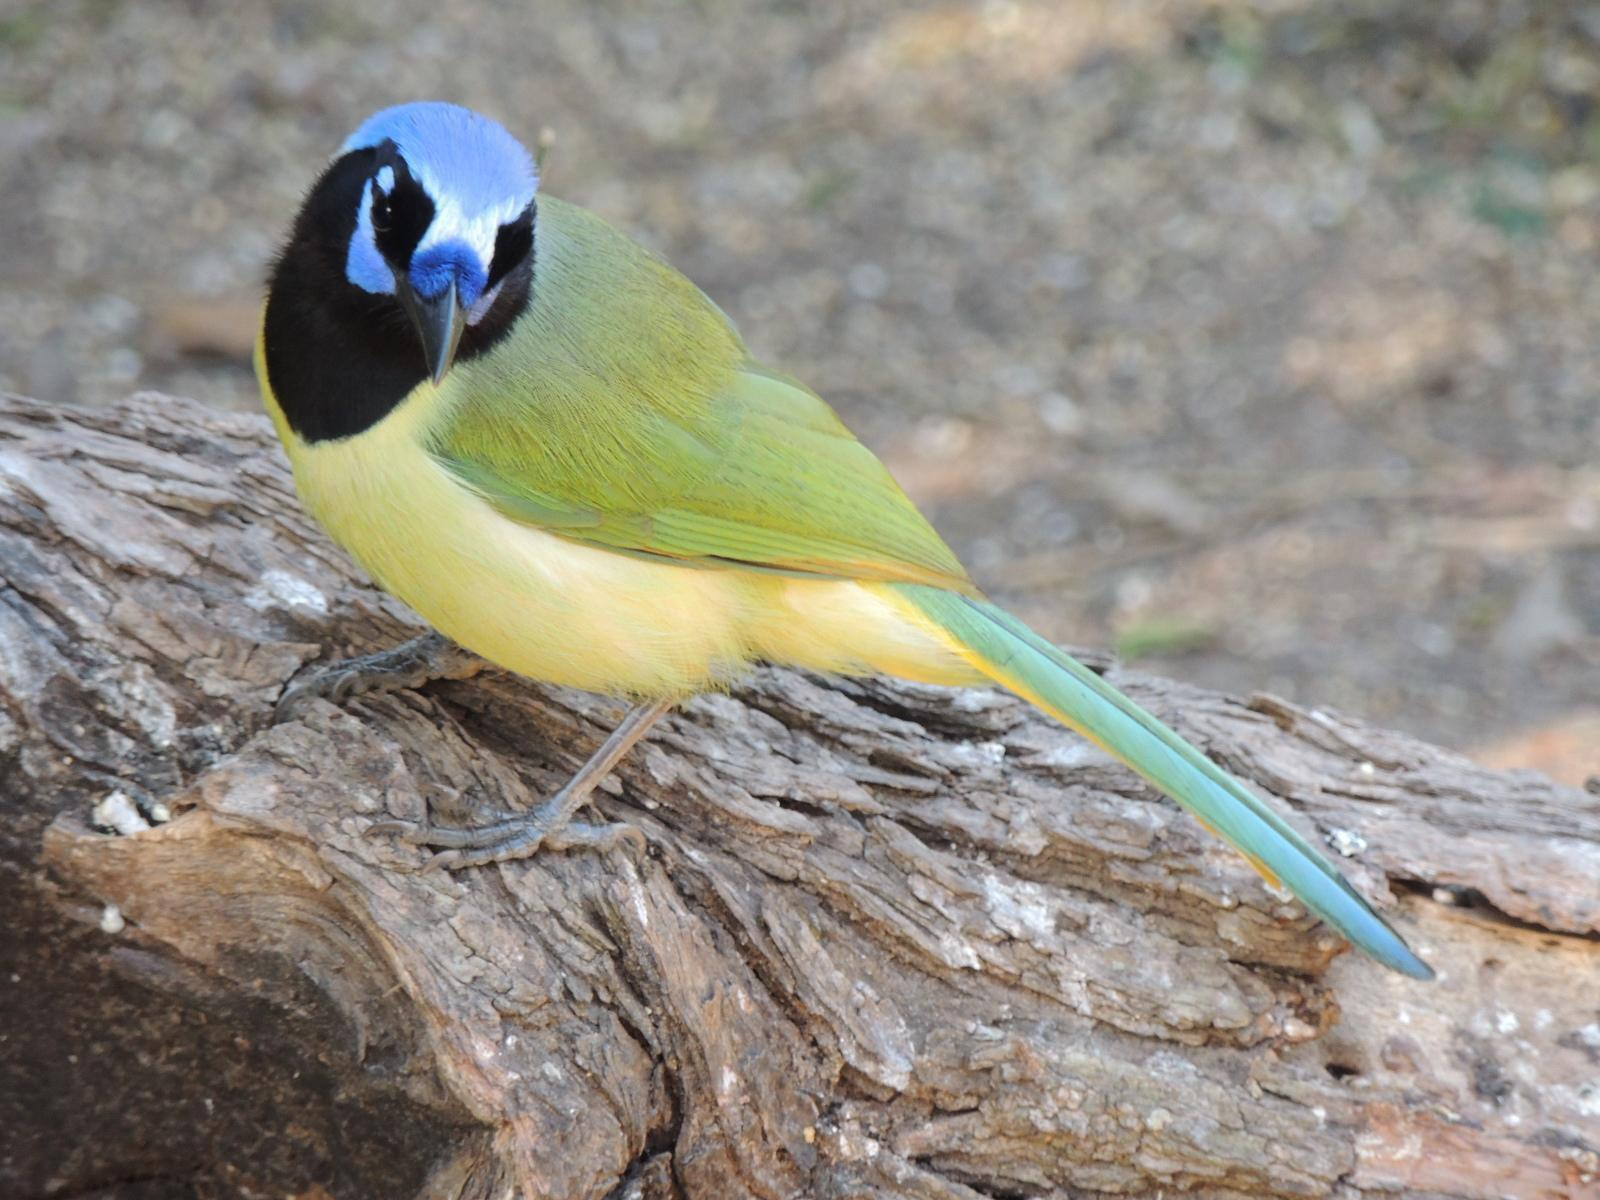 Green Jay Photo by Tony Heindel